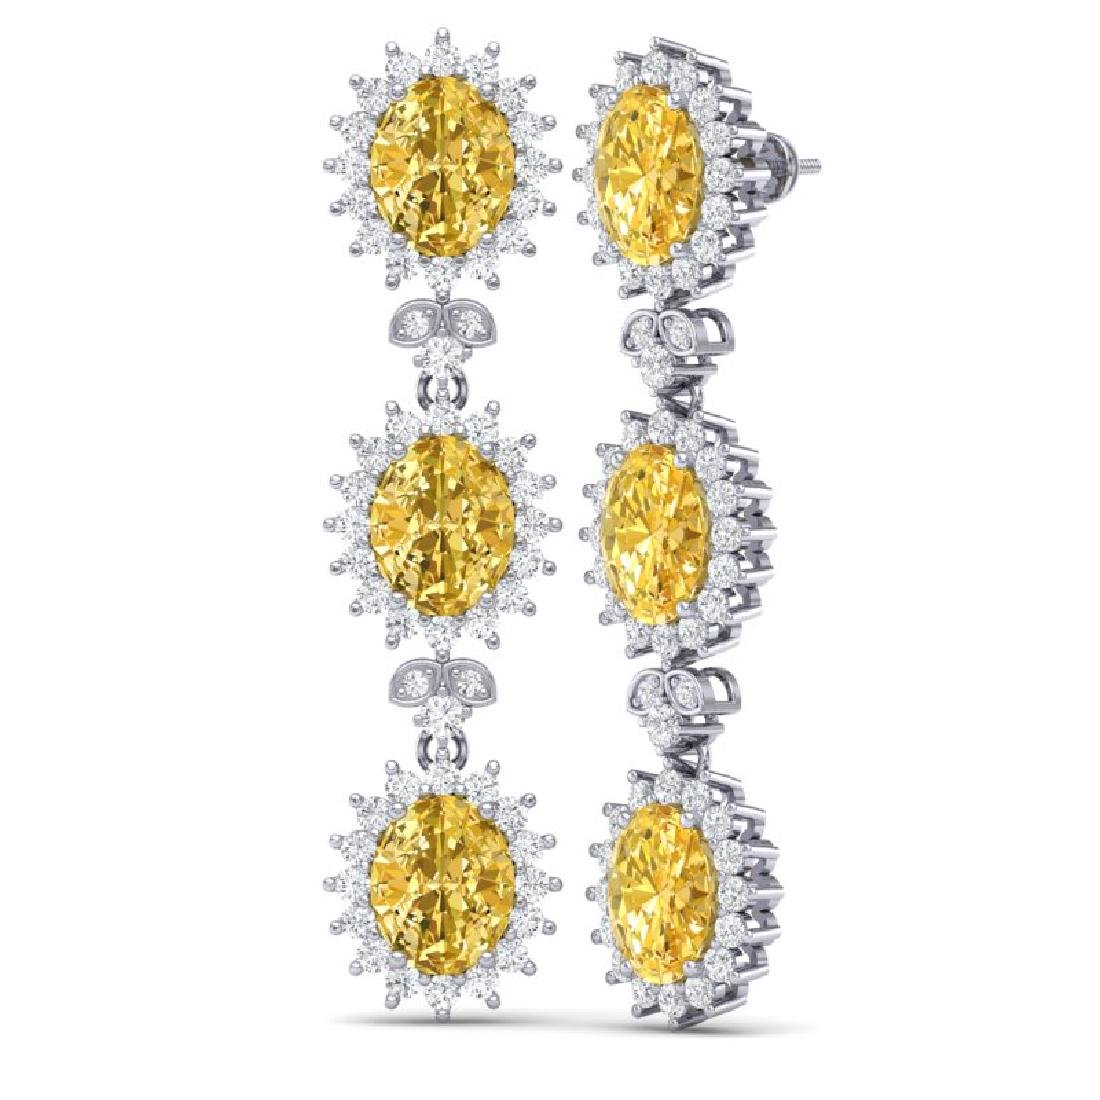 19.06 CTW Royalty Canary Citrine & VS Diamond Earrings - 3